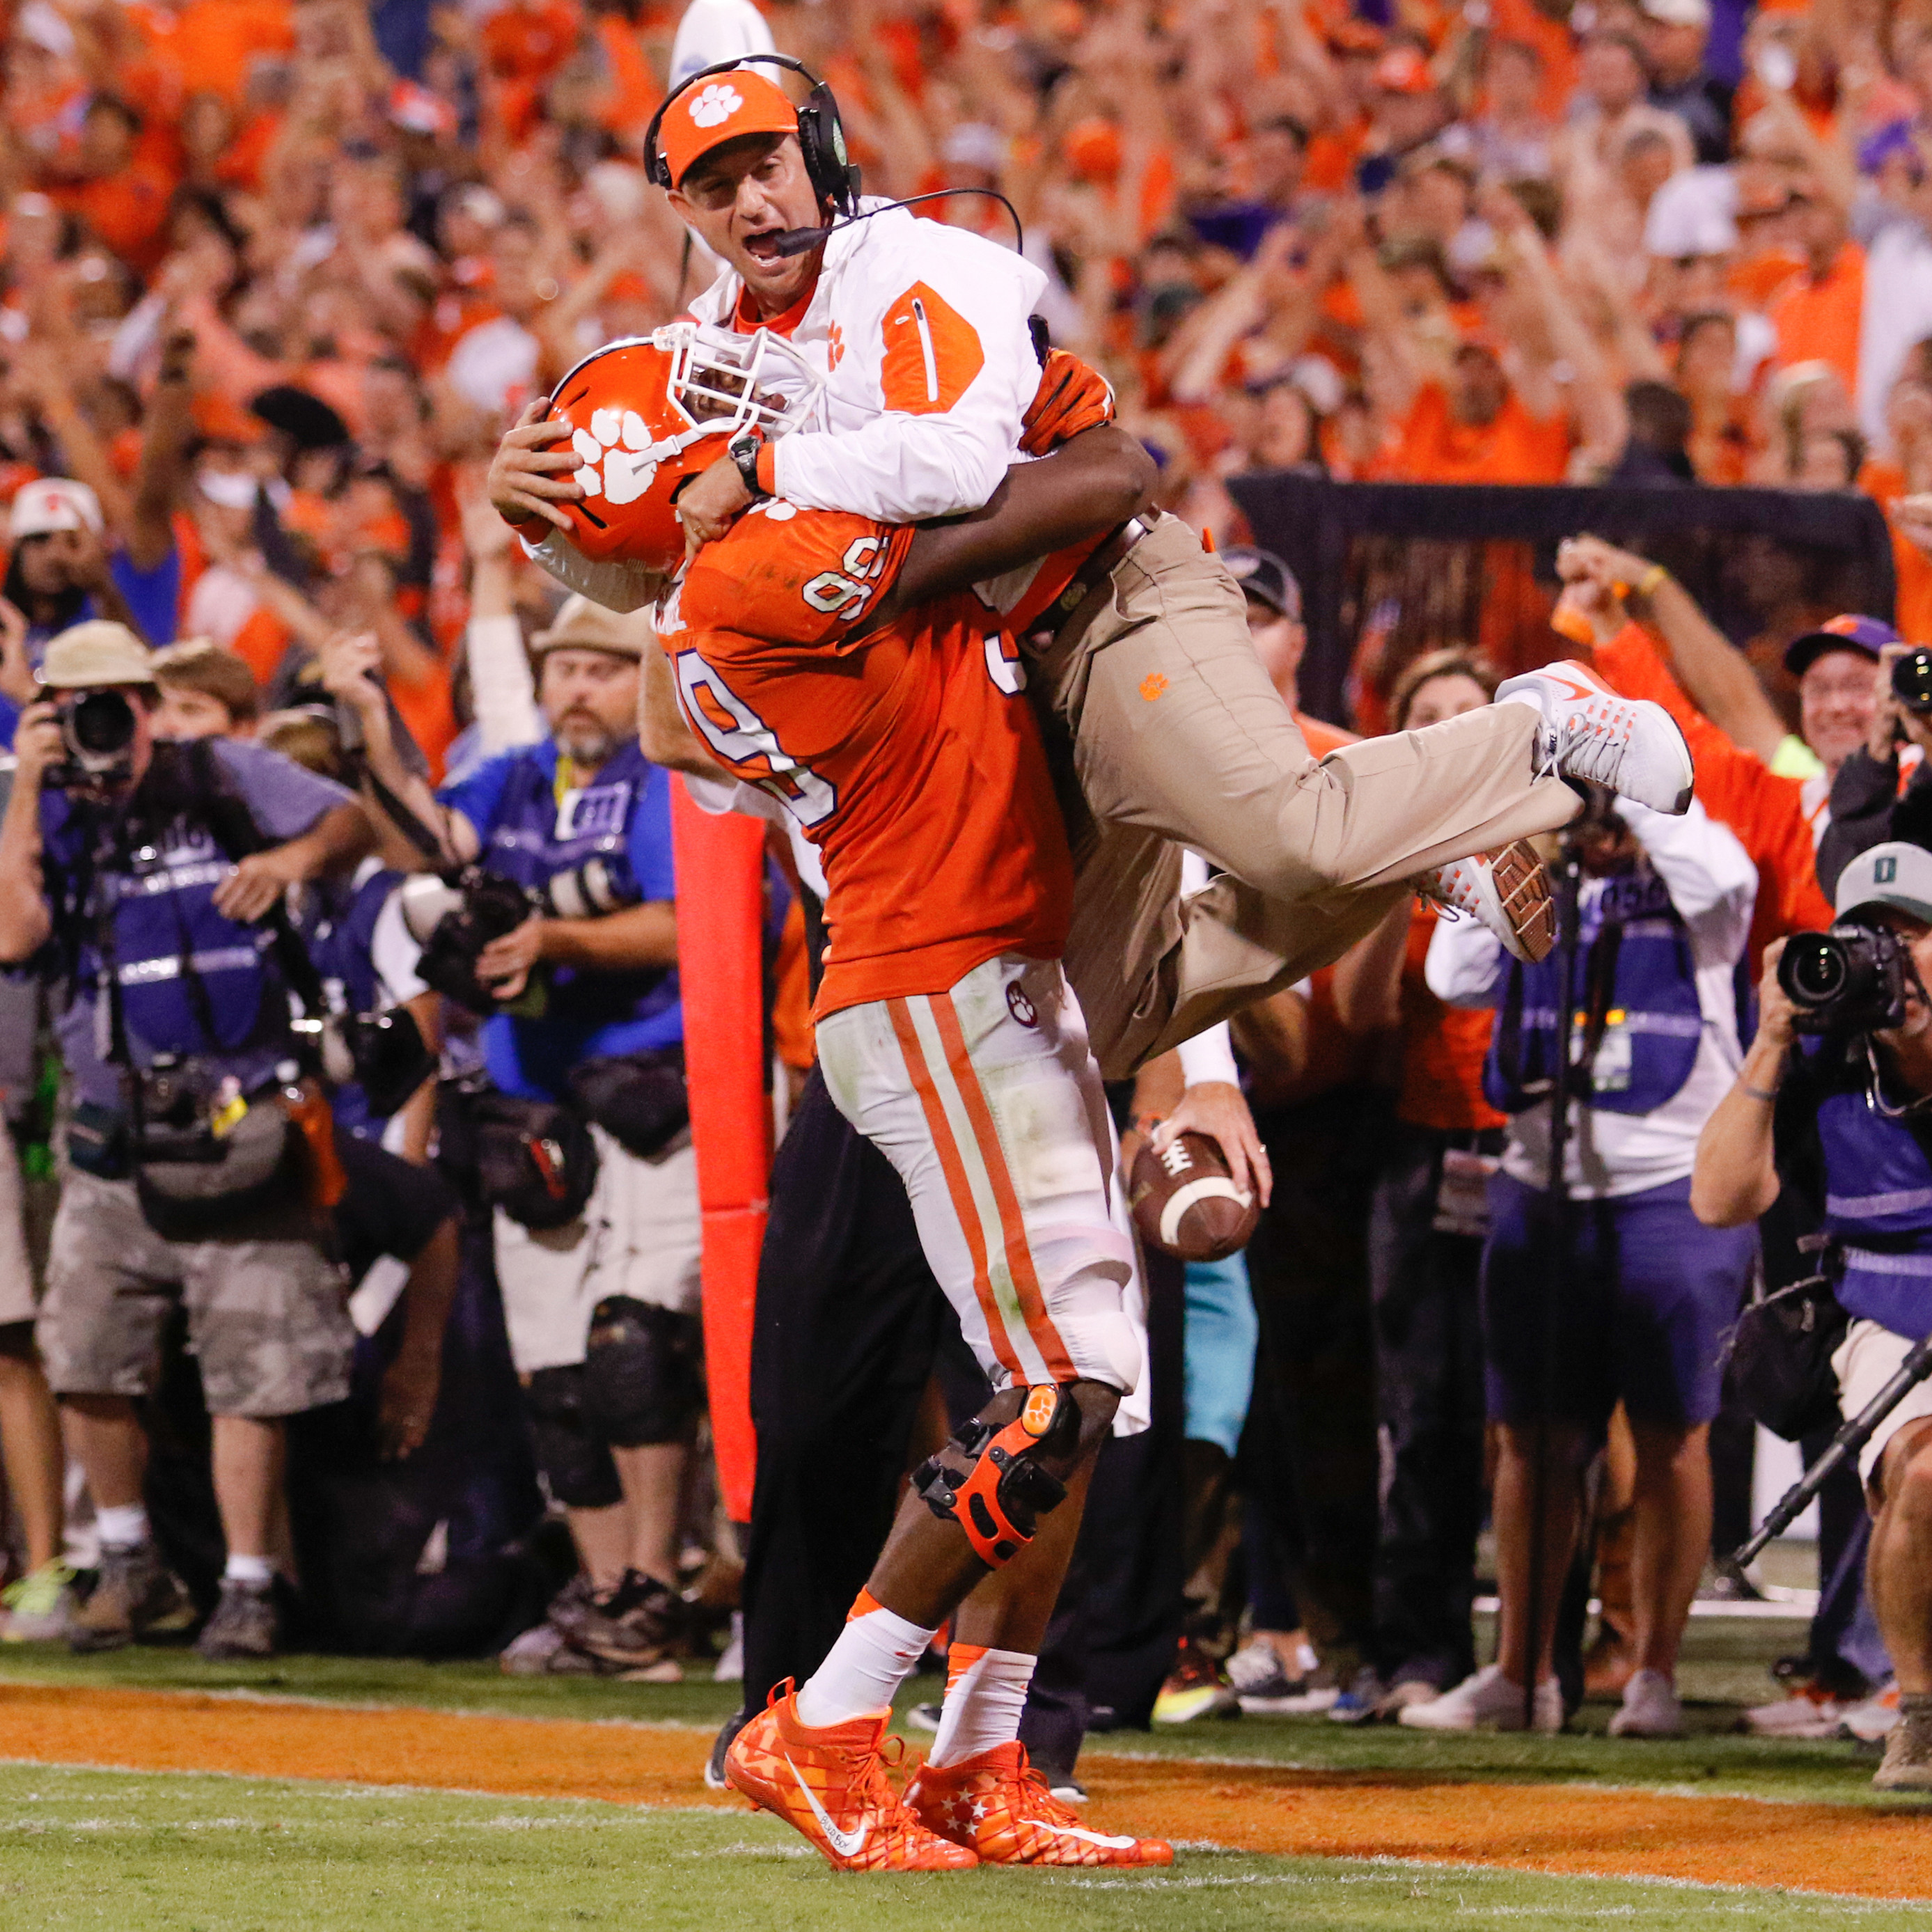 GAMEDAY GUIDE: NC State at Clemson